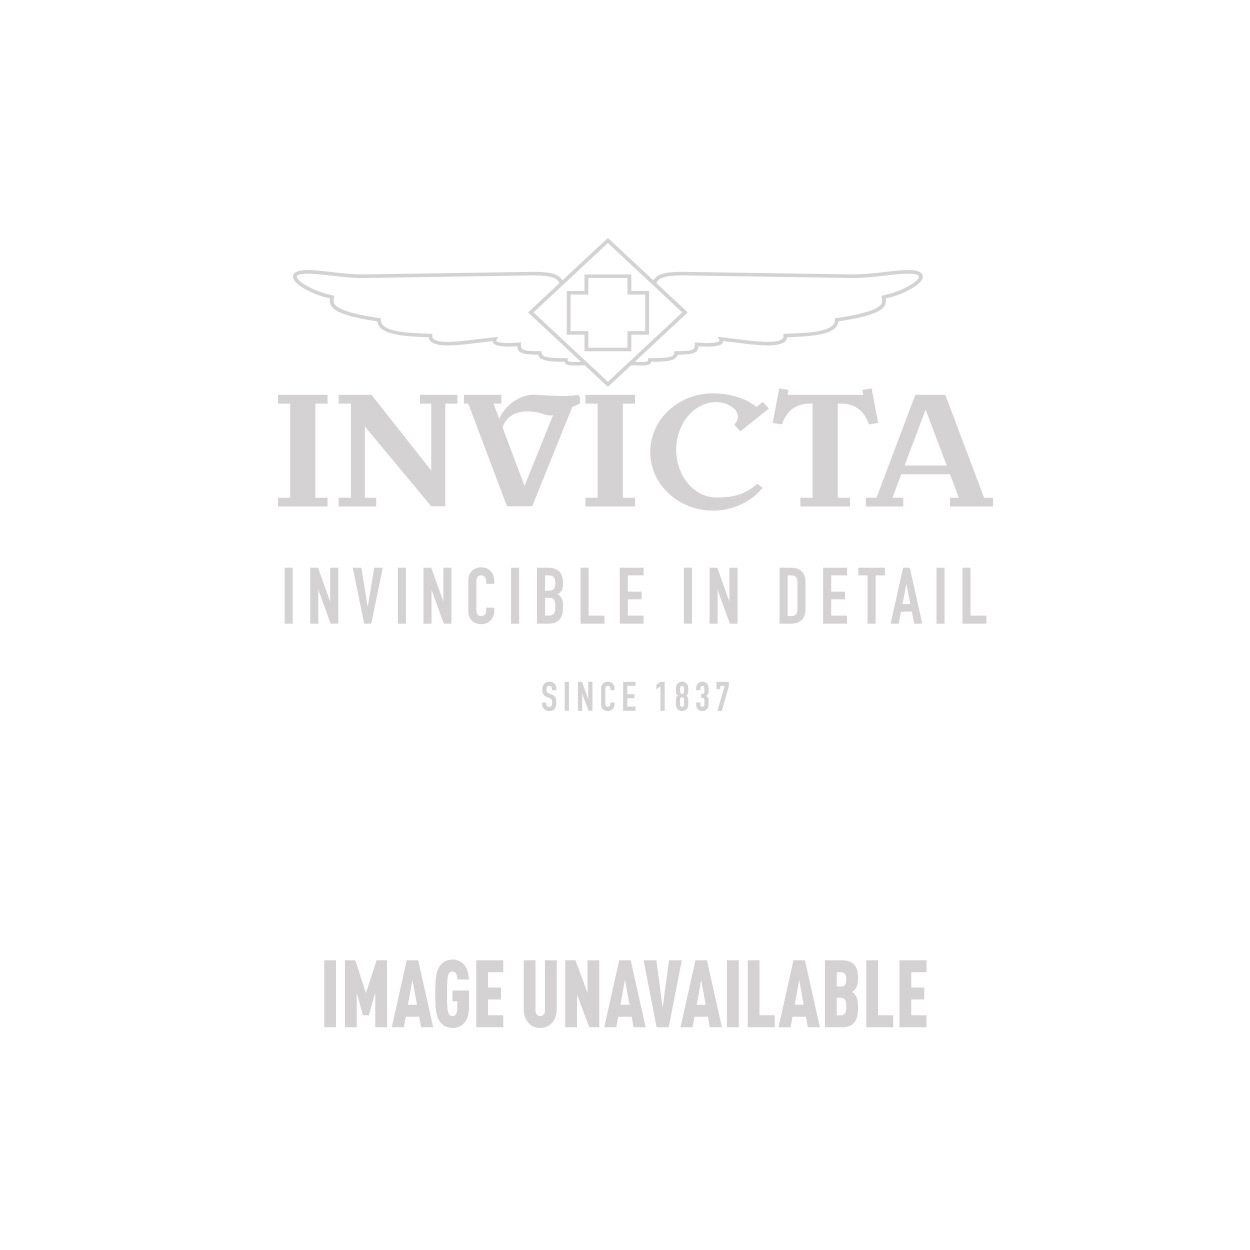 Invicta Objet D Art Mens Automatic 44 mm Stainless Steel Case Silver Dial - Model 27560